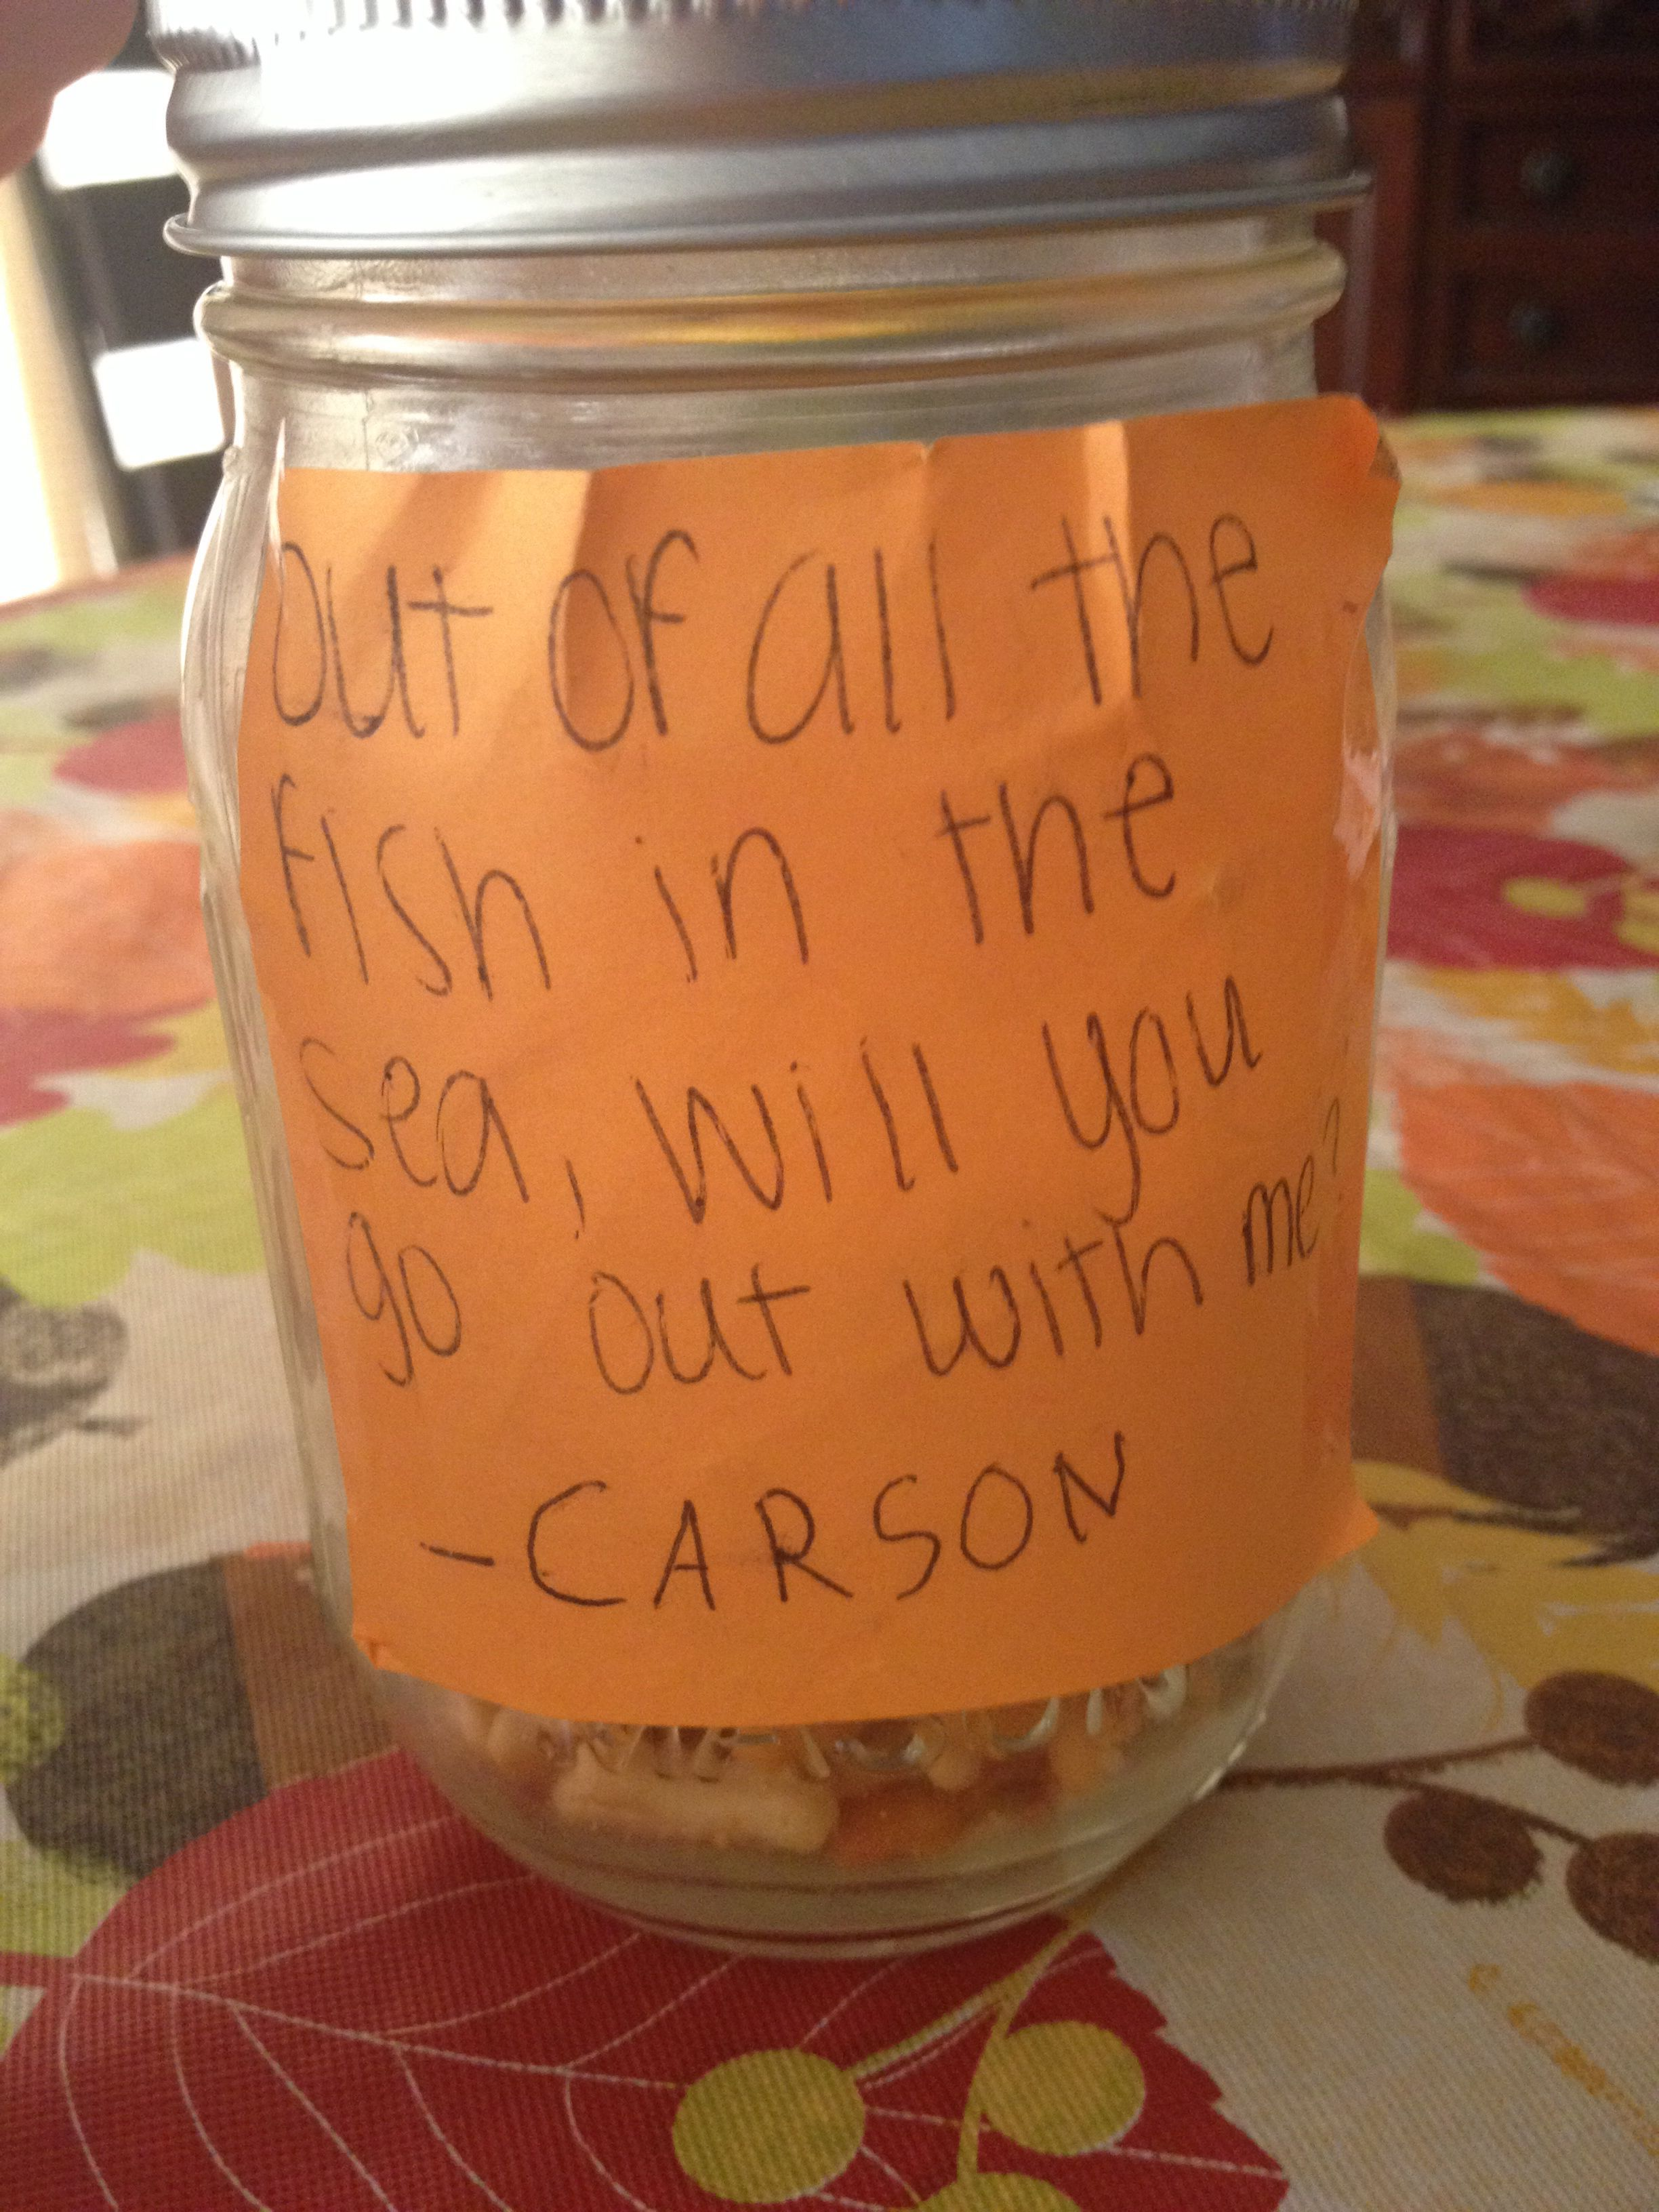 what is a cute way to ask a girl out